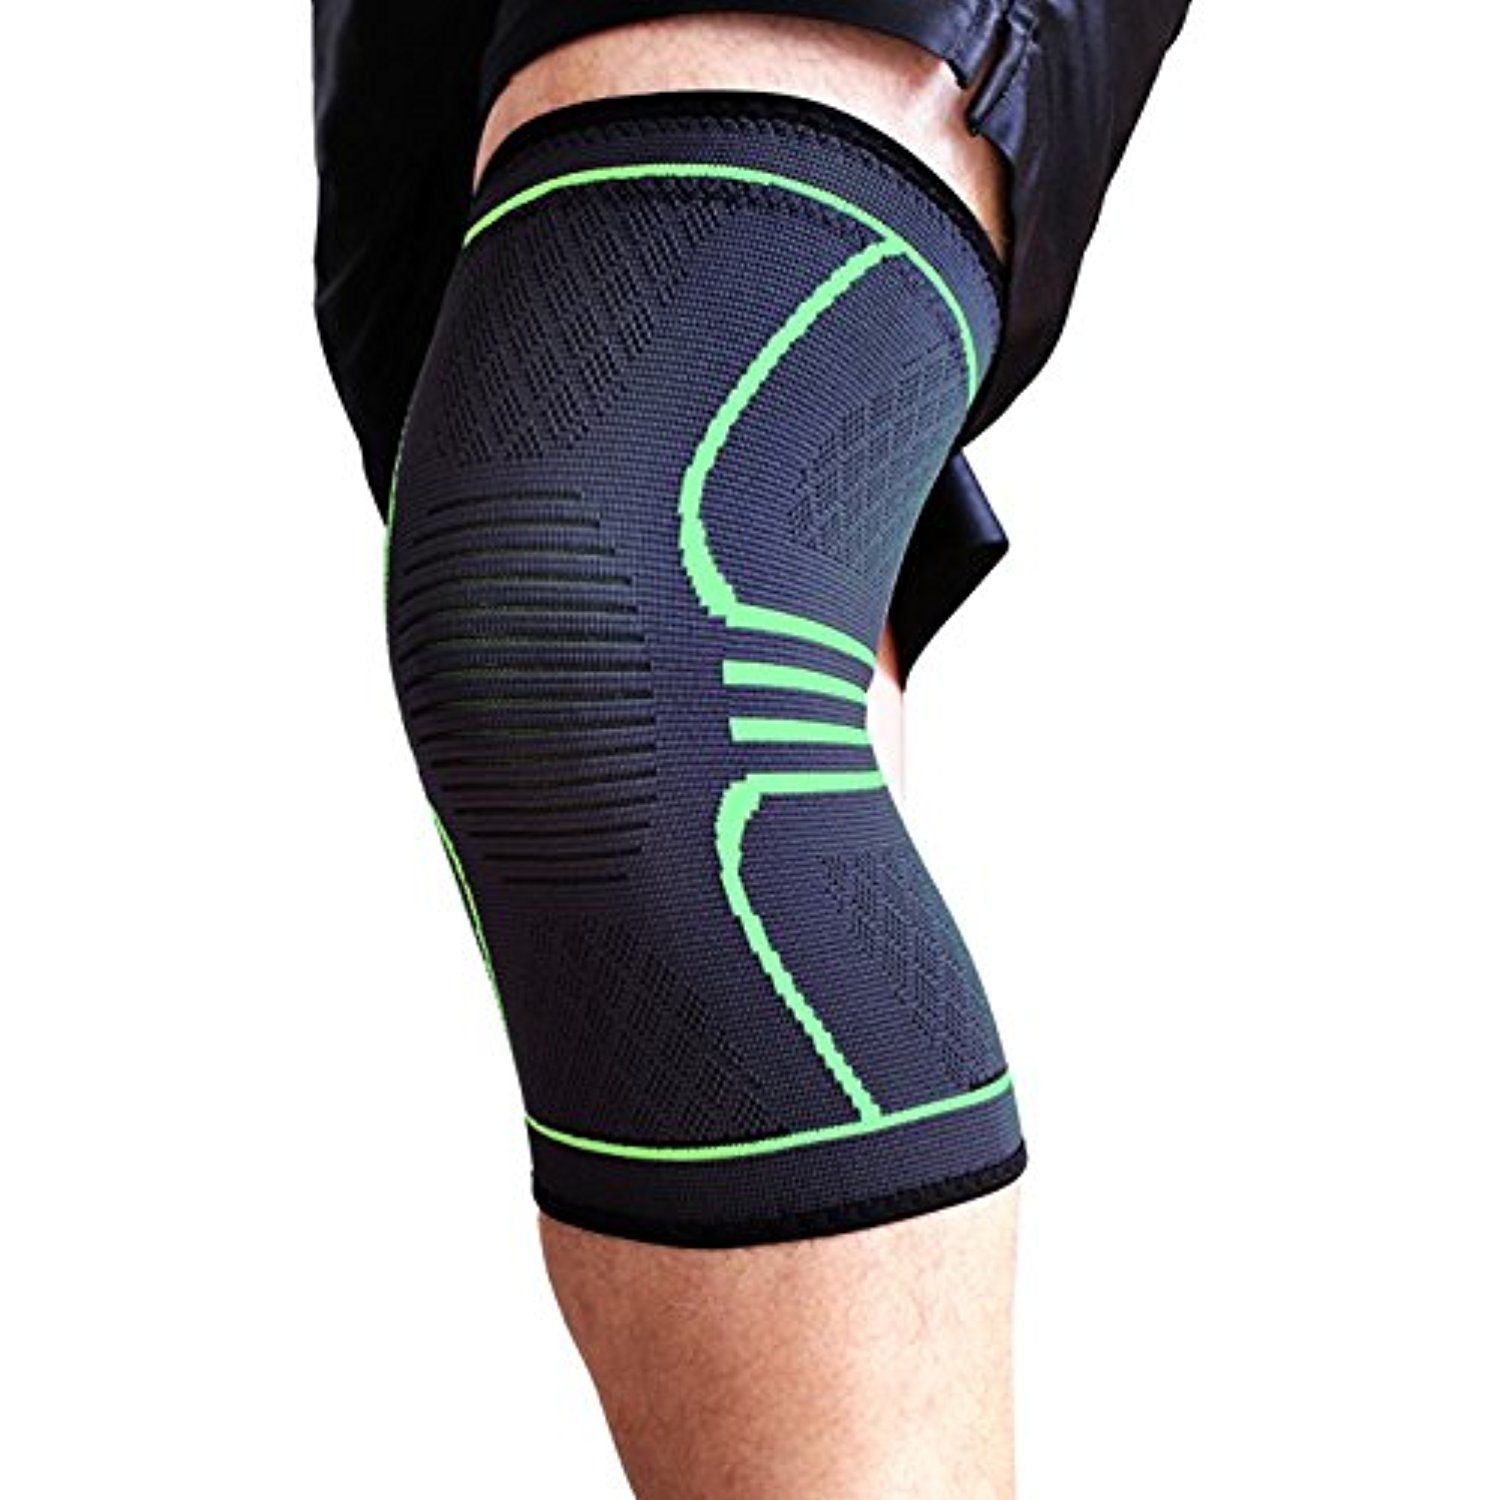 80f80af531 Renew Athletics Knee Compression Sleeve, Single Wrap ** You can find out  more details at the link of the image. (This is an affiliate link)  #TeamSports